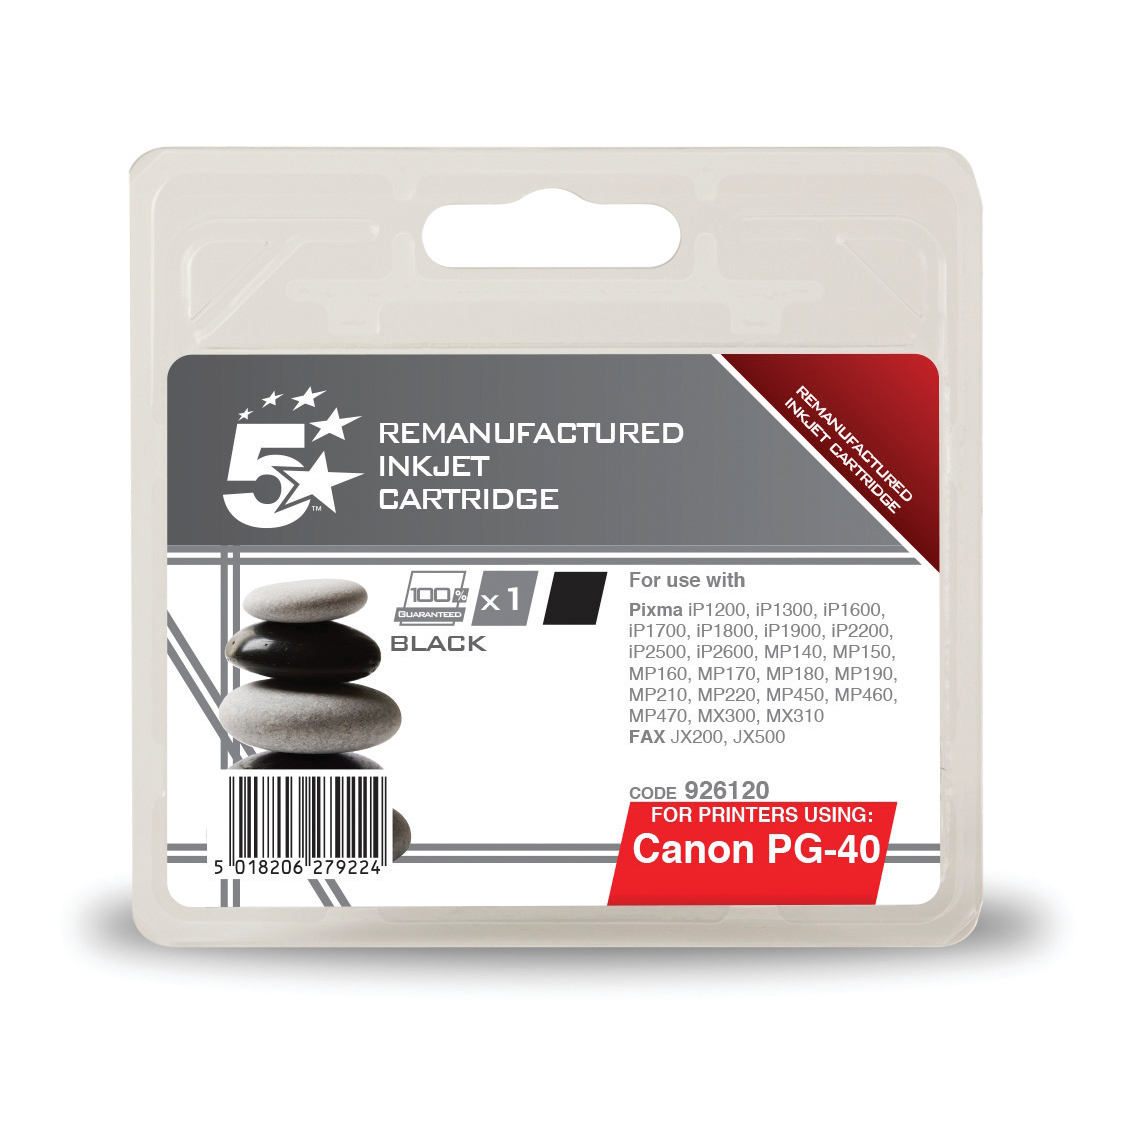 Image for 5 Star Office Remanufactured Fax Inkjet Cartridge Page Life 490pp Black [Canon PG-40 Alternative]